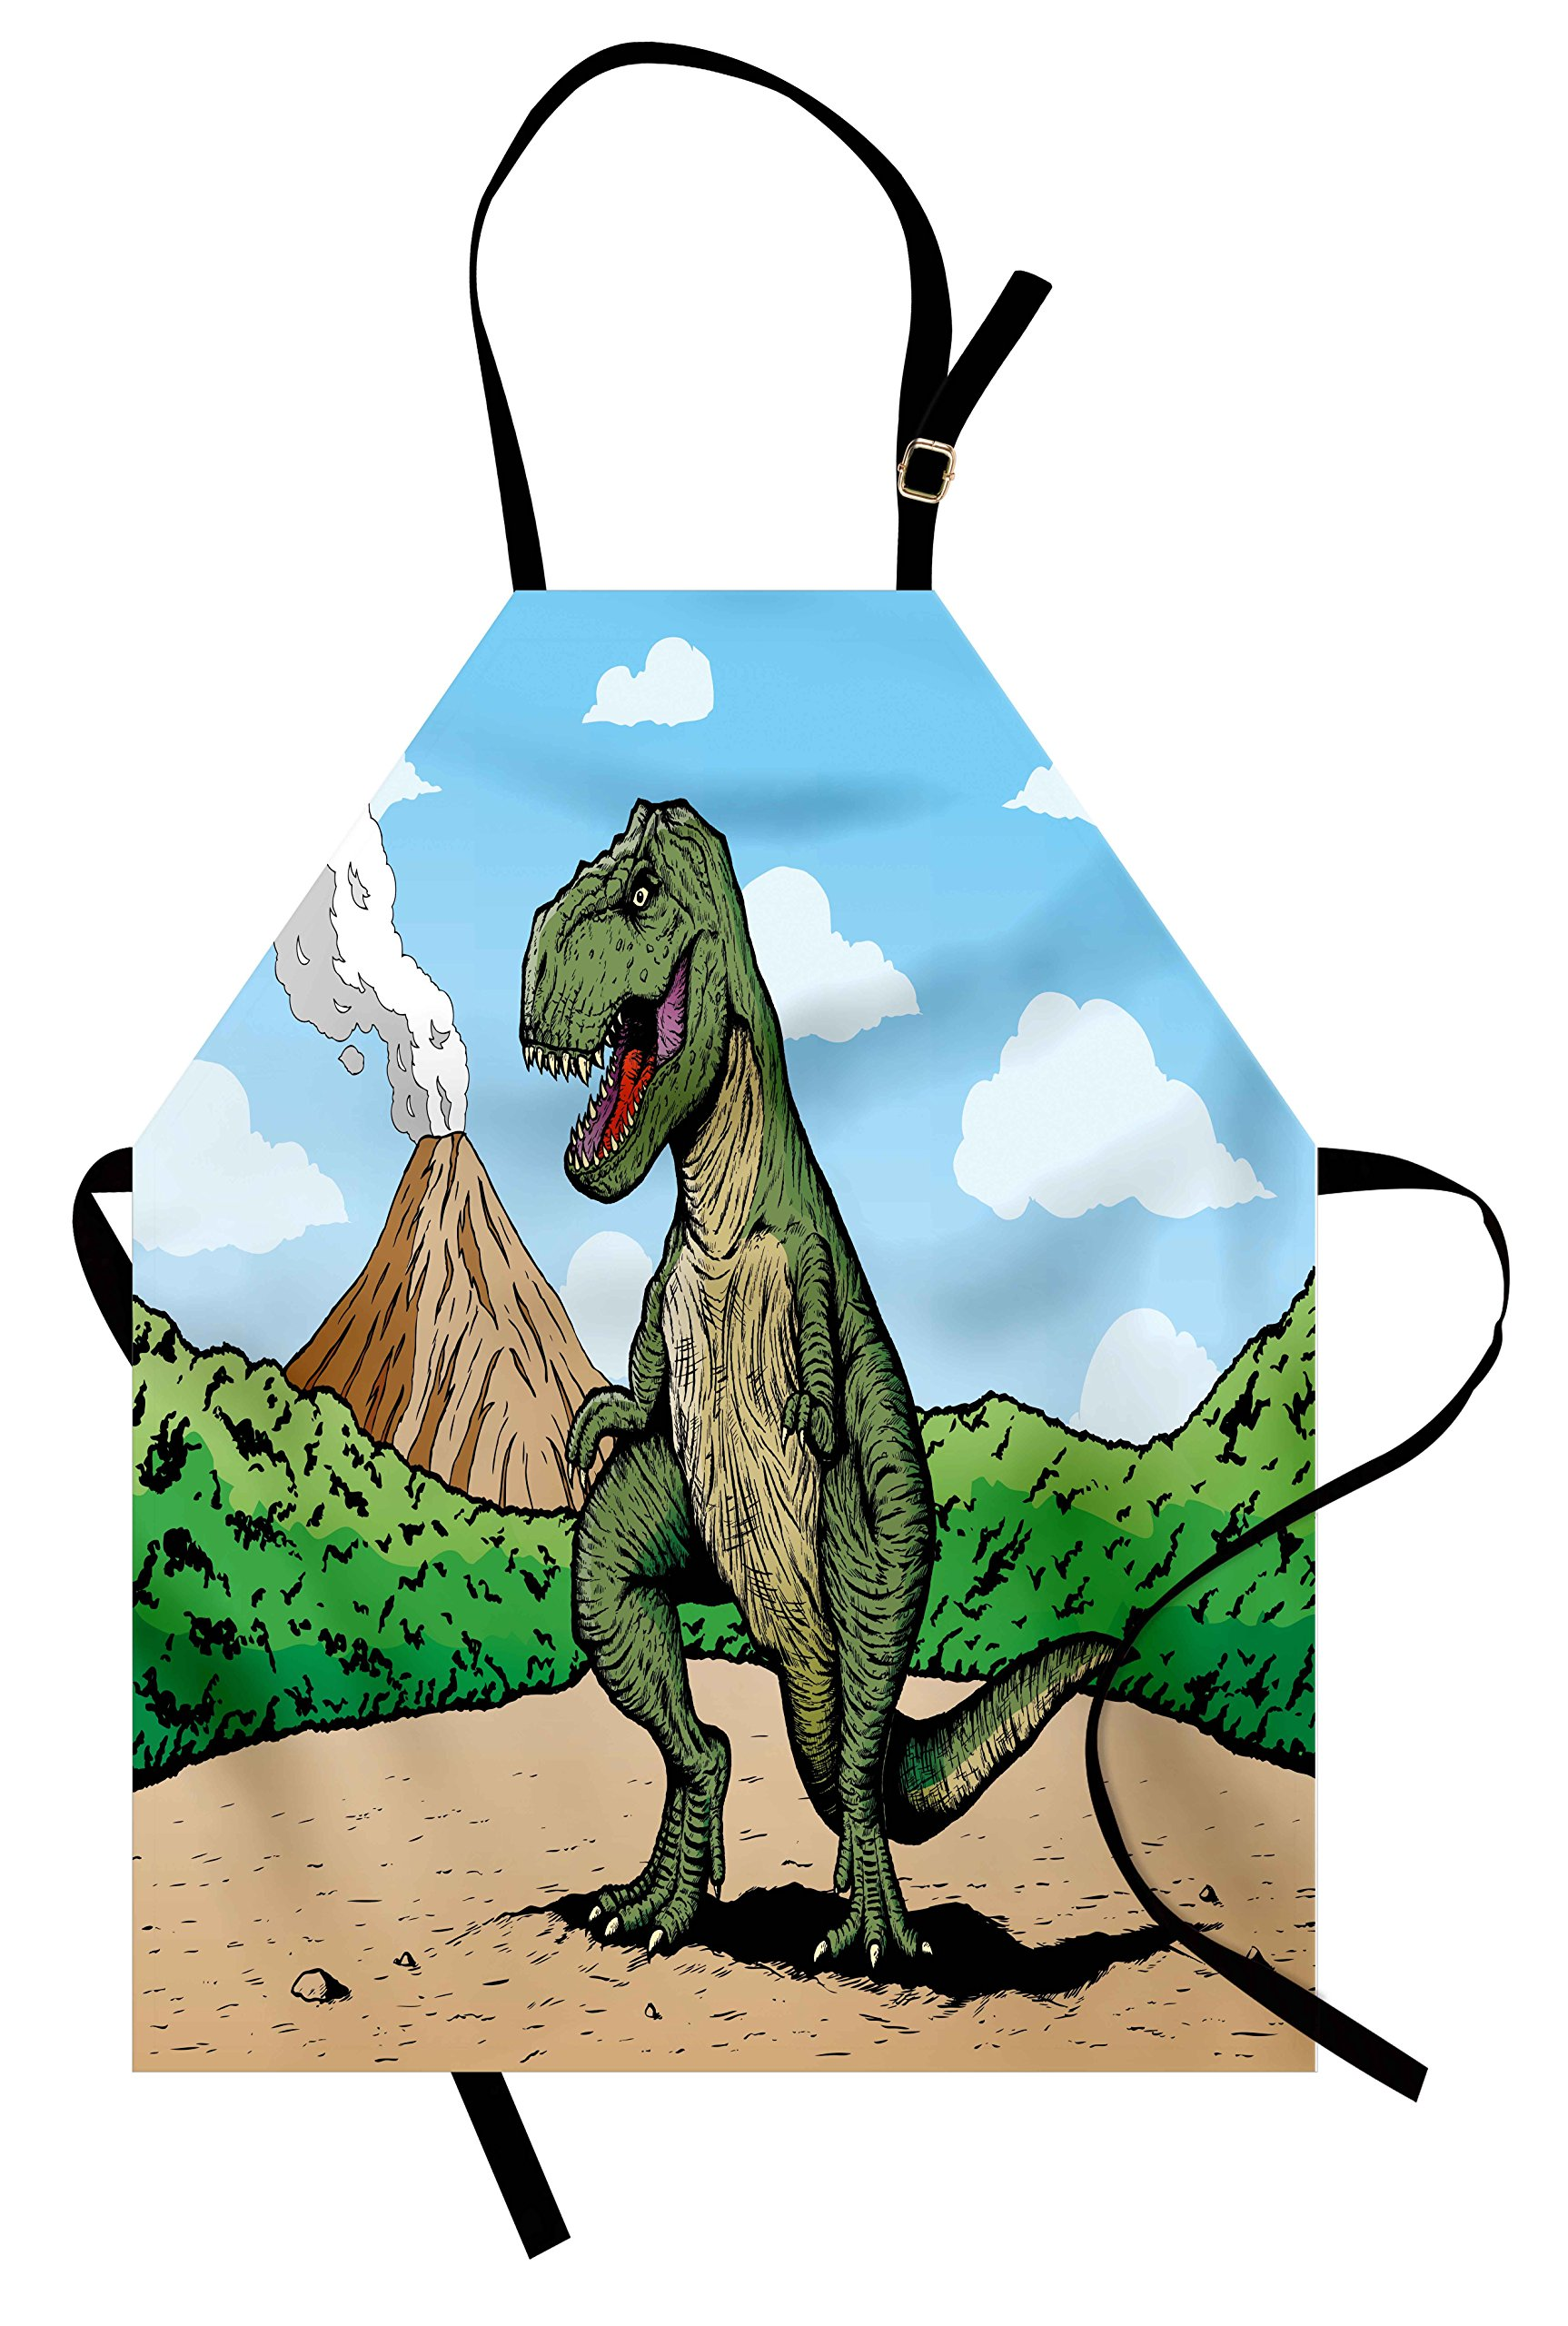 Ambesonne Dinosaur Apron, Giant Lizard T-Rex on Active Volcano Untouched Jungle Backdrop, Unisex Kitchen Bib Apron with Adjustable Neck for Cooking Baking Gardening, Green Pale Brown Pale Blue